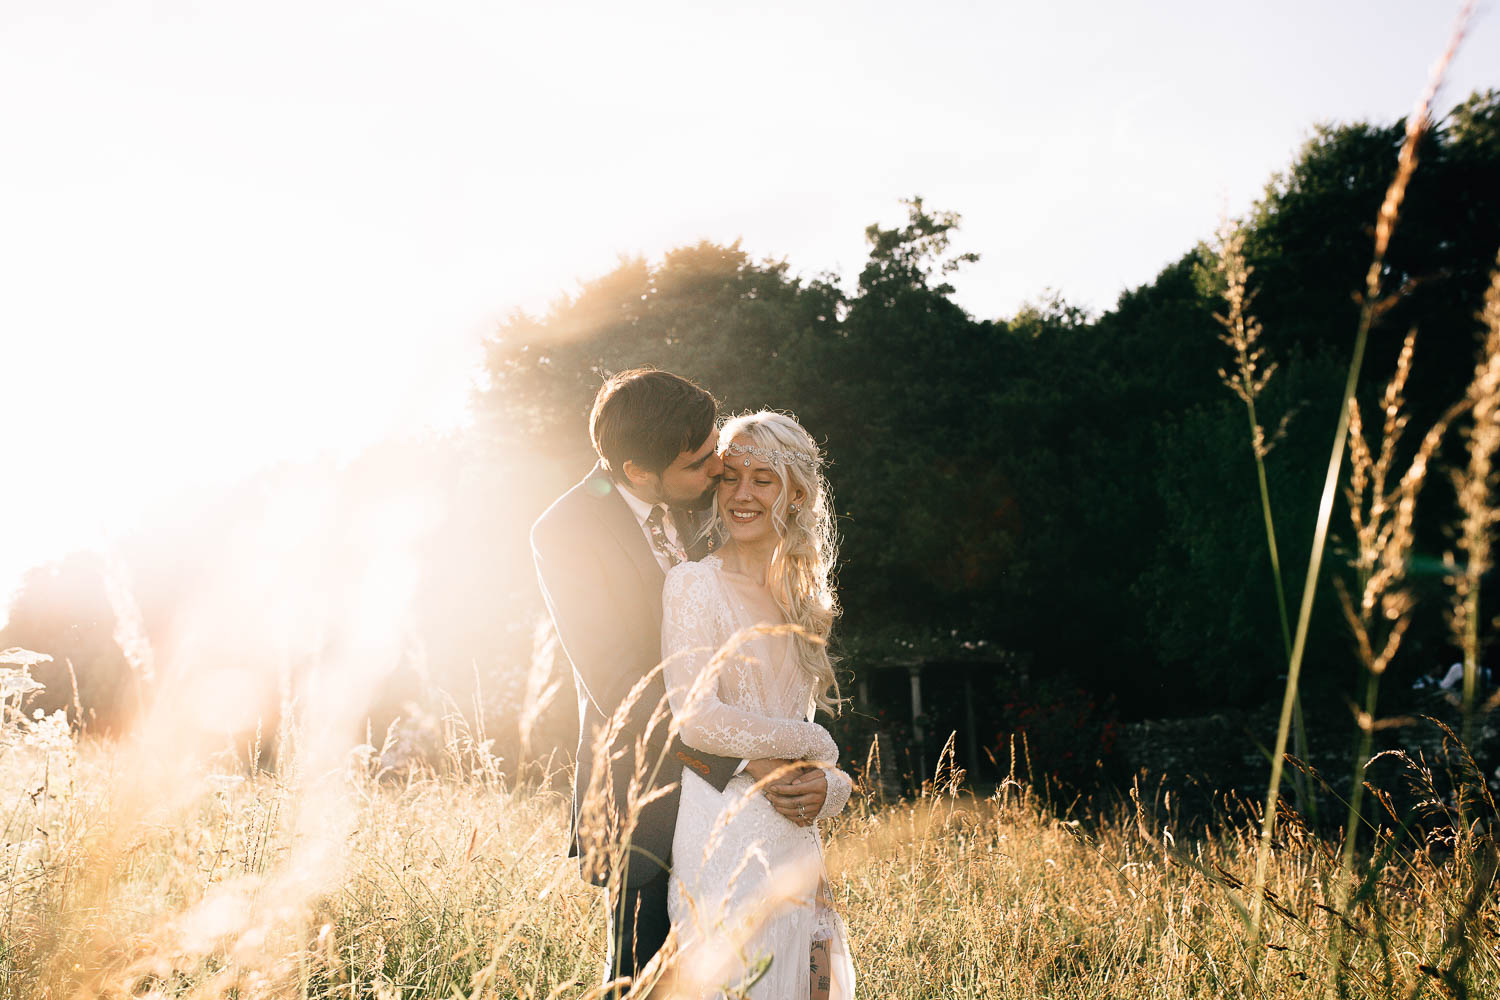 Creative Wedding Photographer based in Bristol